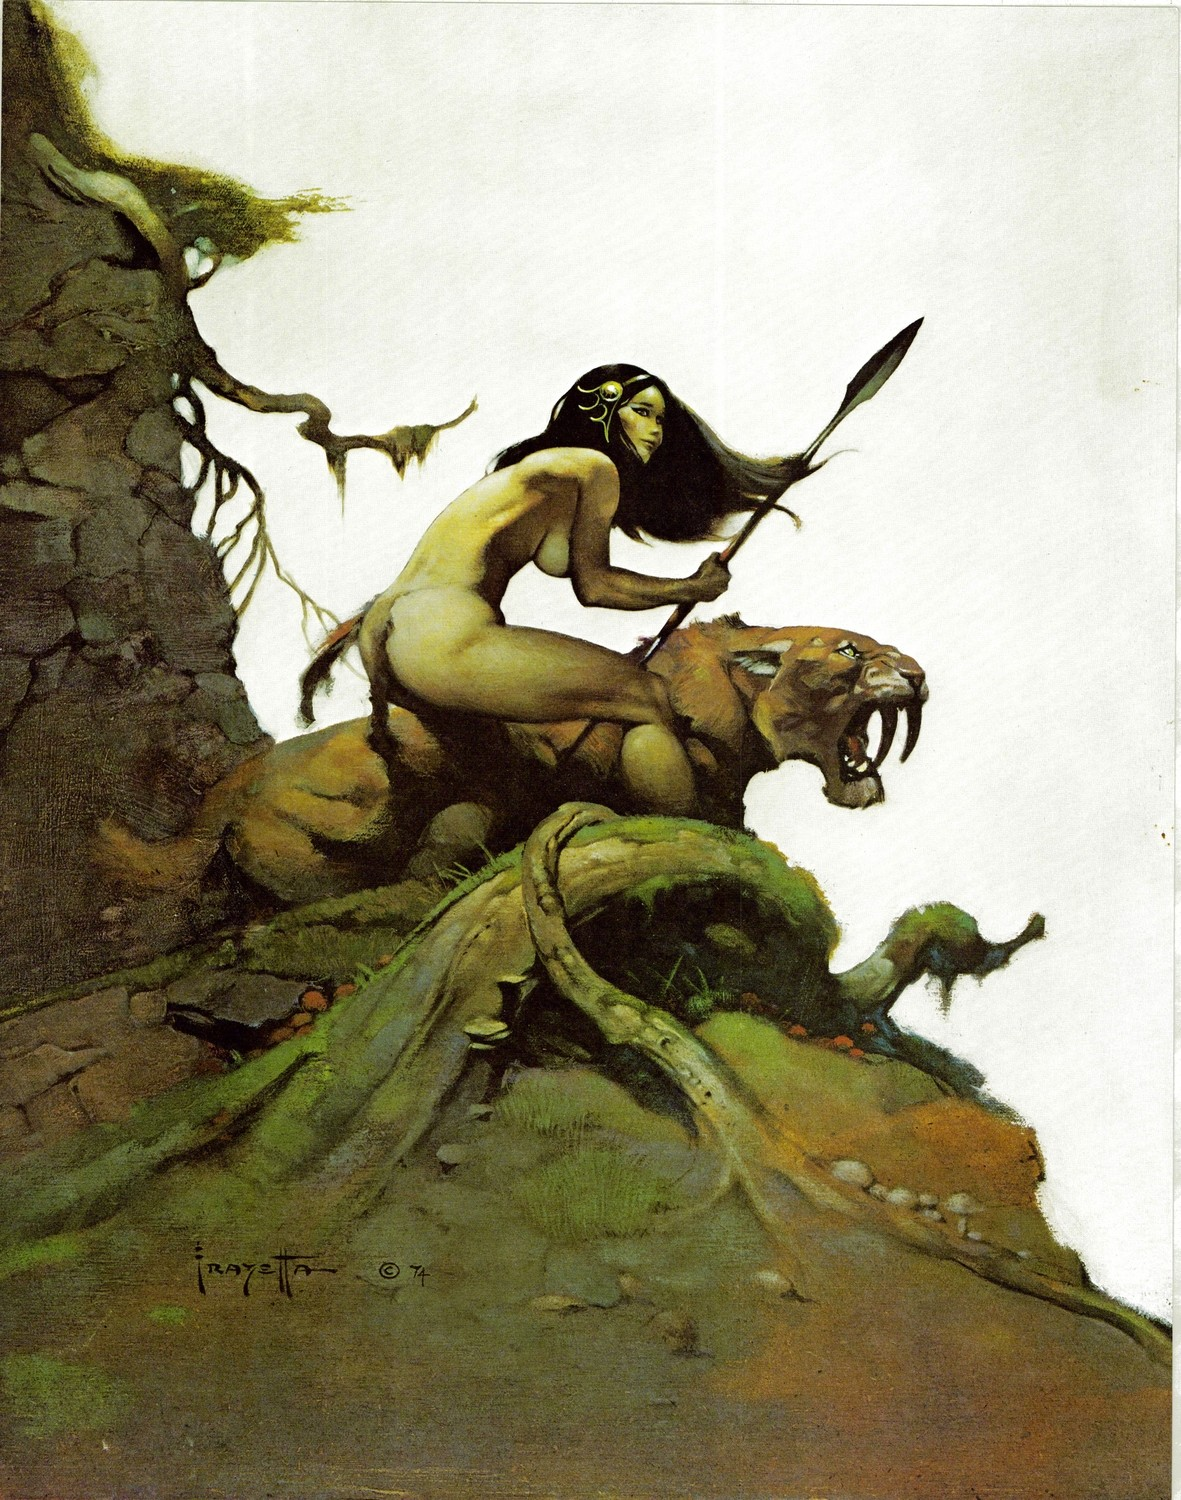 Savage Pellucidar (No - 38)